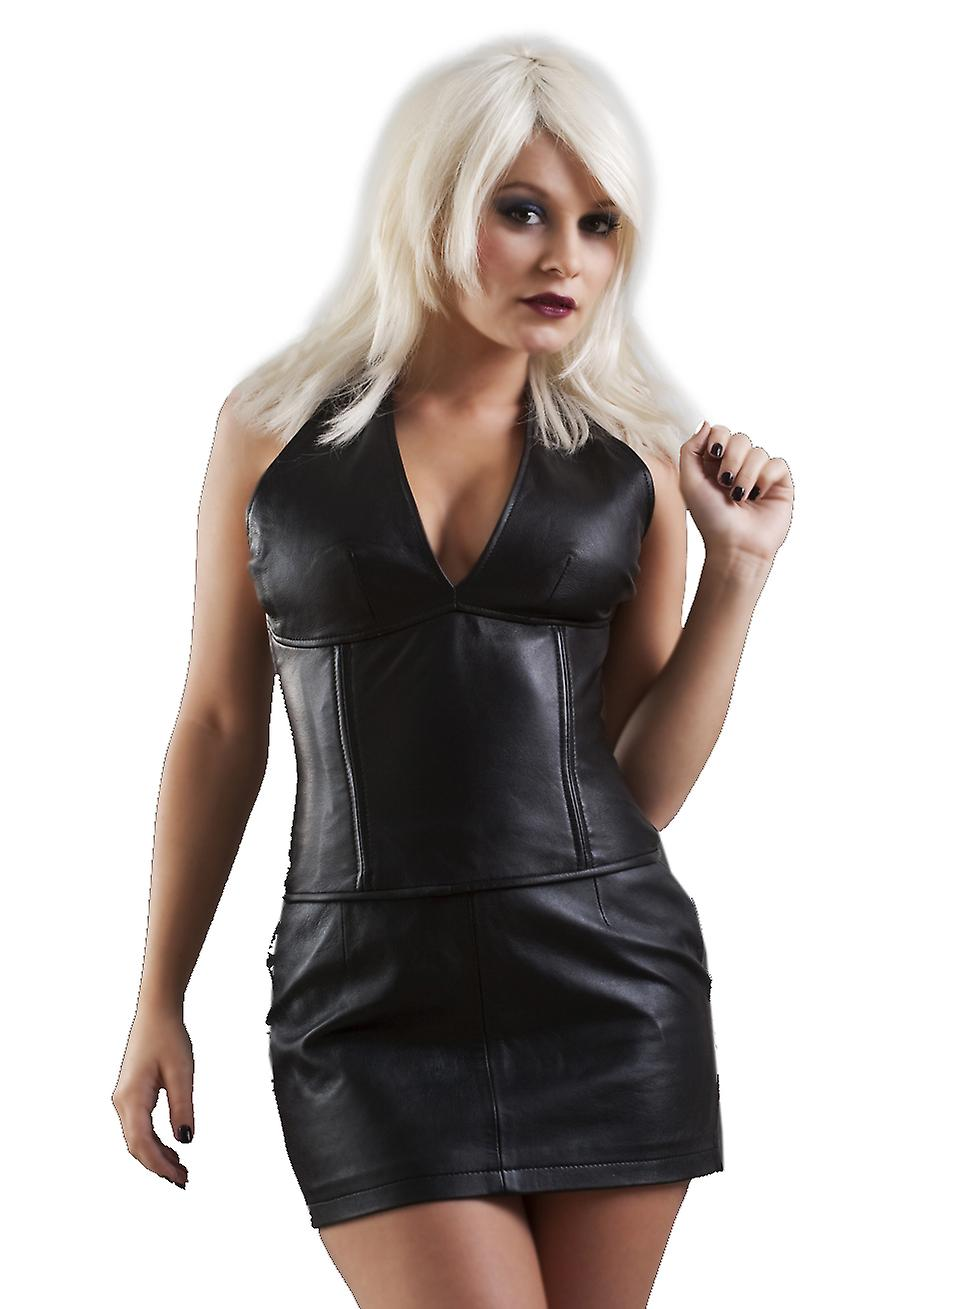 Honour Women's Classic Mini Skirt in Latex Rubber Black Sexy Outfit